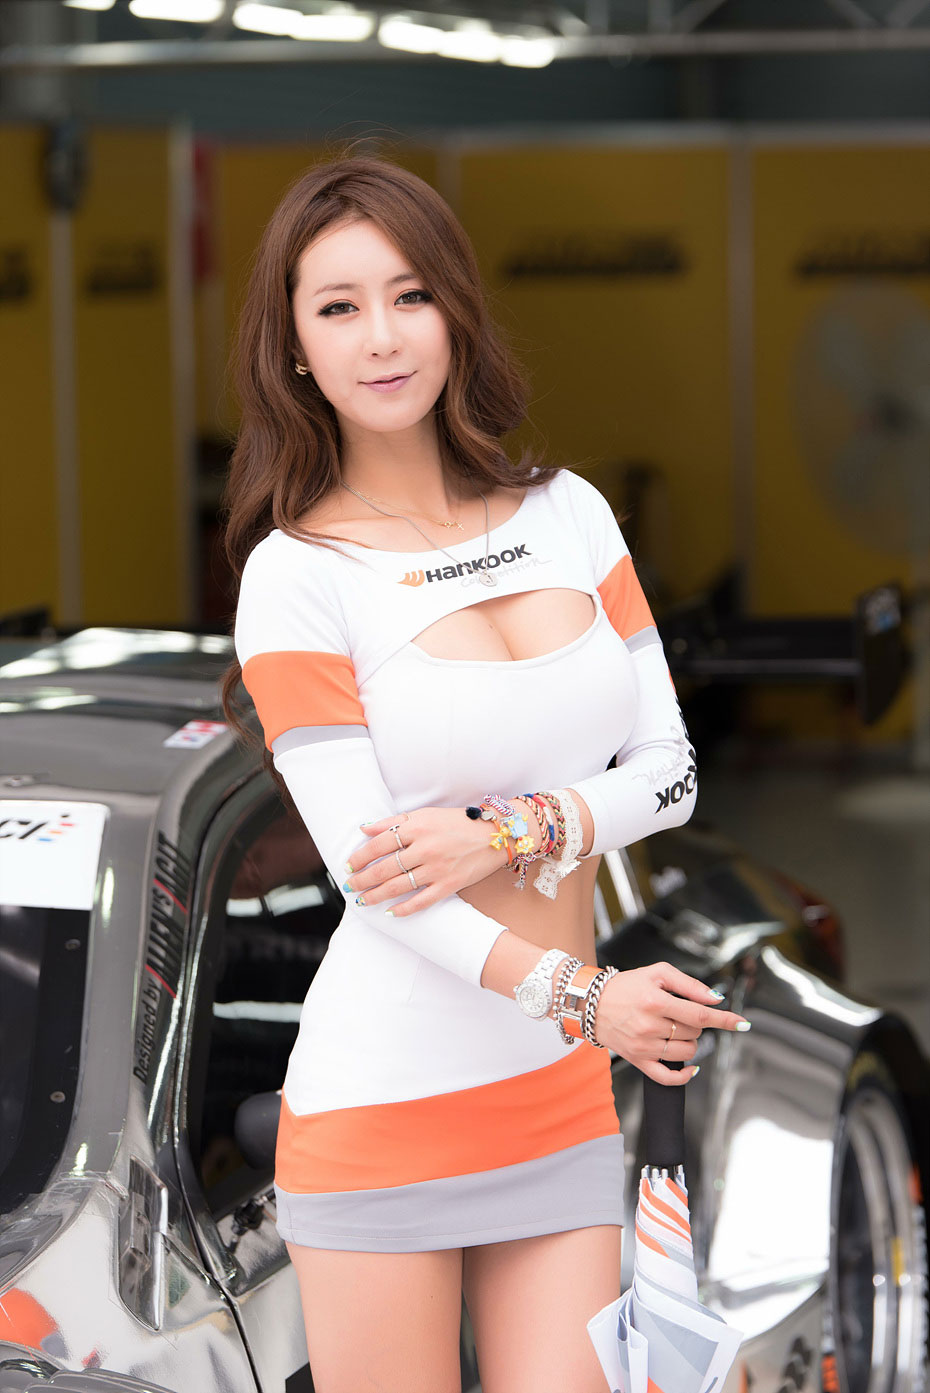 Jung Joo Mi CJ Super Race 2015 Hankook